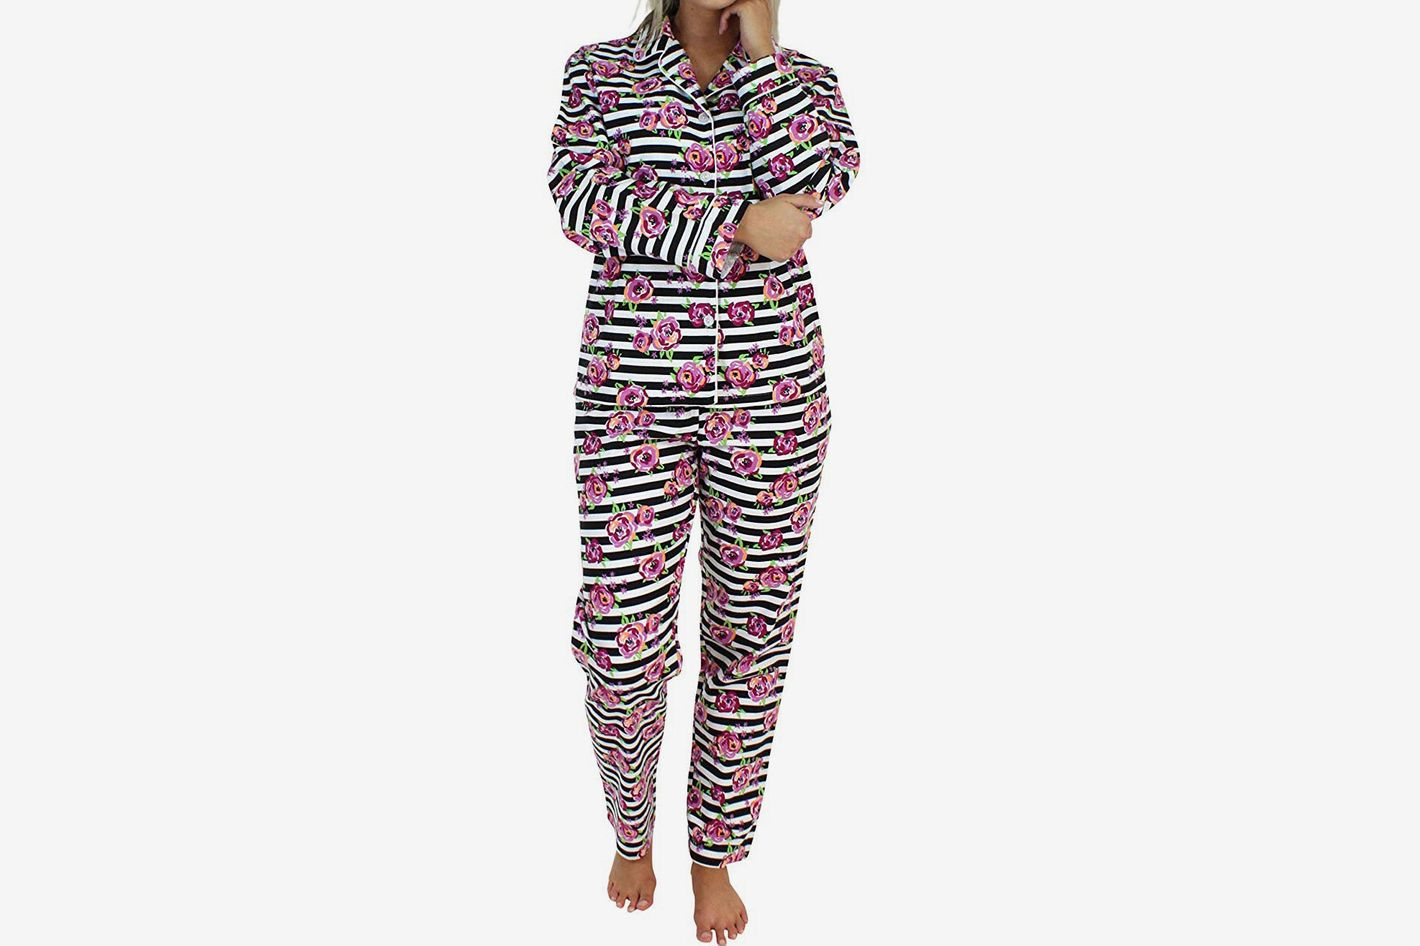 e543206b05 PajamaMania Women s Sleepwear Flannel Long Sleeve Pajamas